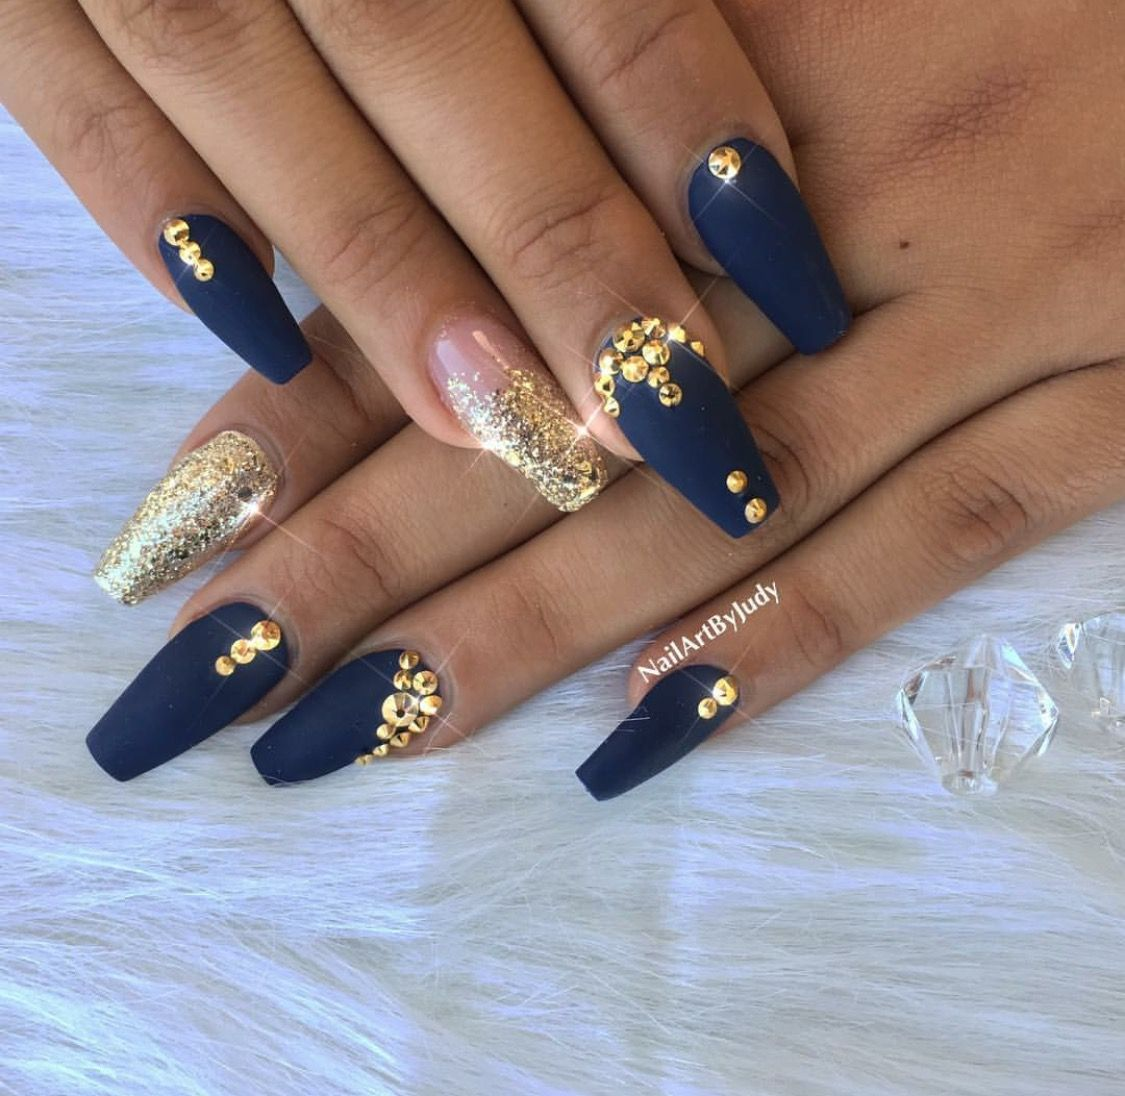 Royal Blue And Gold Nails Nailpro Nails Pinterest Nails